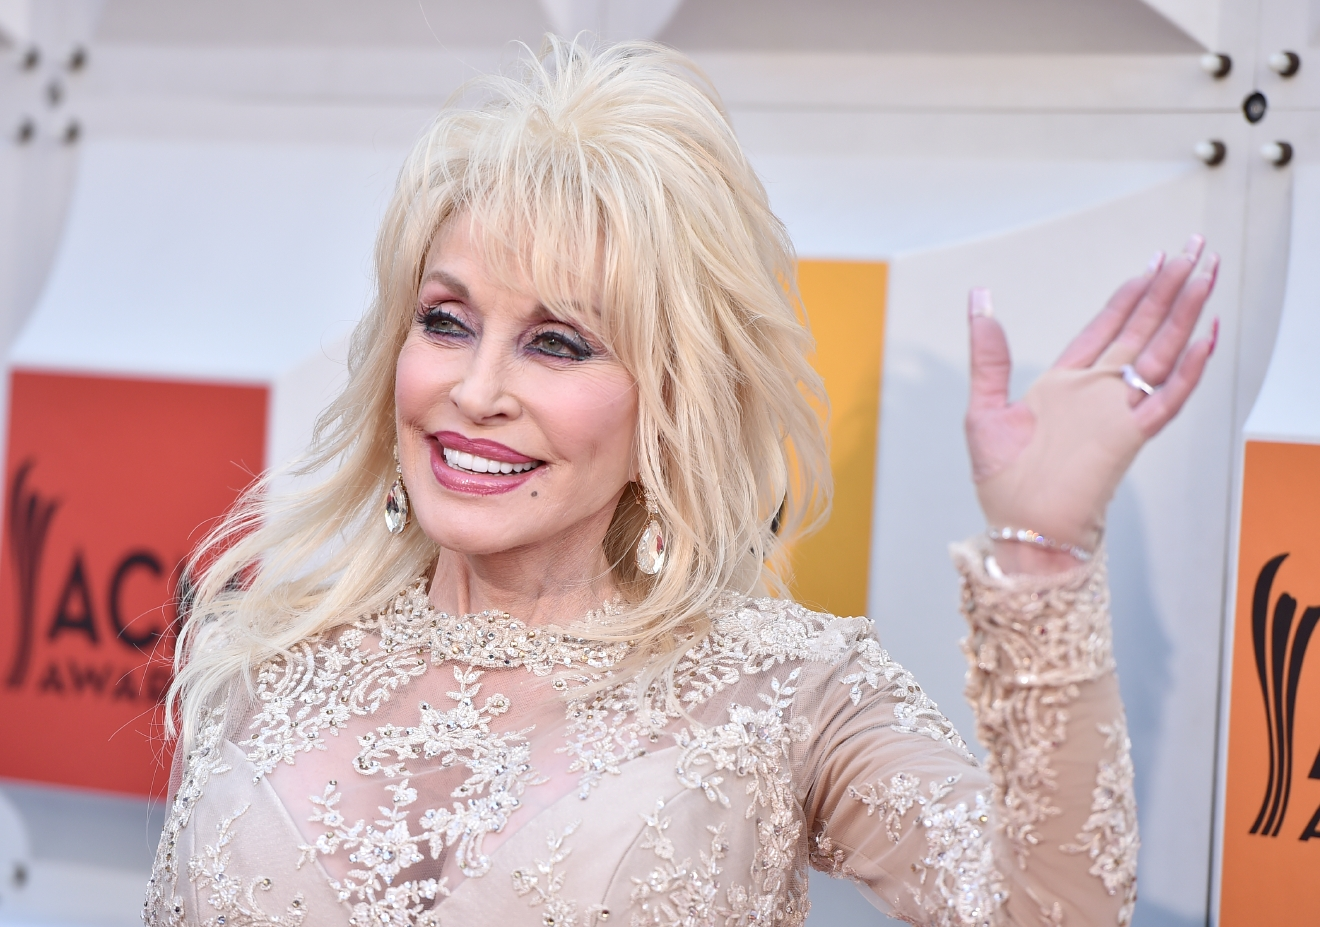 Dolly Parton arrives at the 51st annual Academy of Country Music Awards at the MGM Grand Garden Arena on Sunday, April 3, 2016, in Las Vegas. (Photo by Jordan Strauss/Invision/AP)